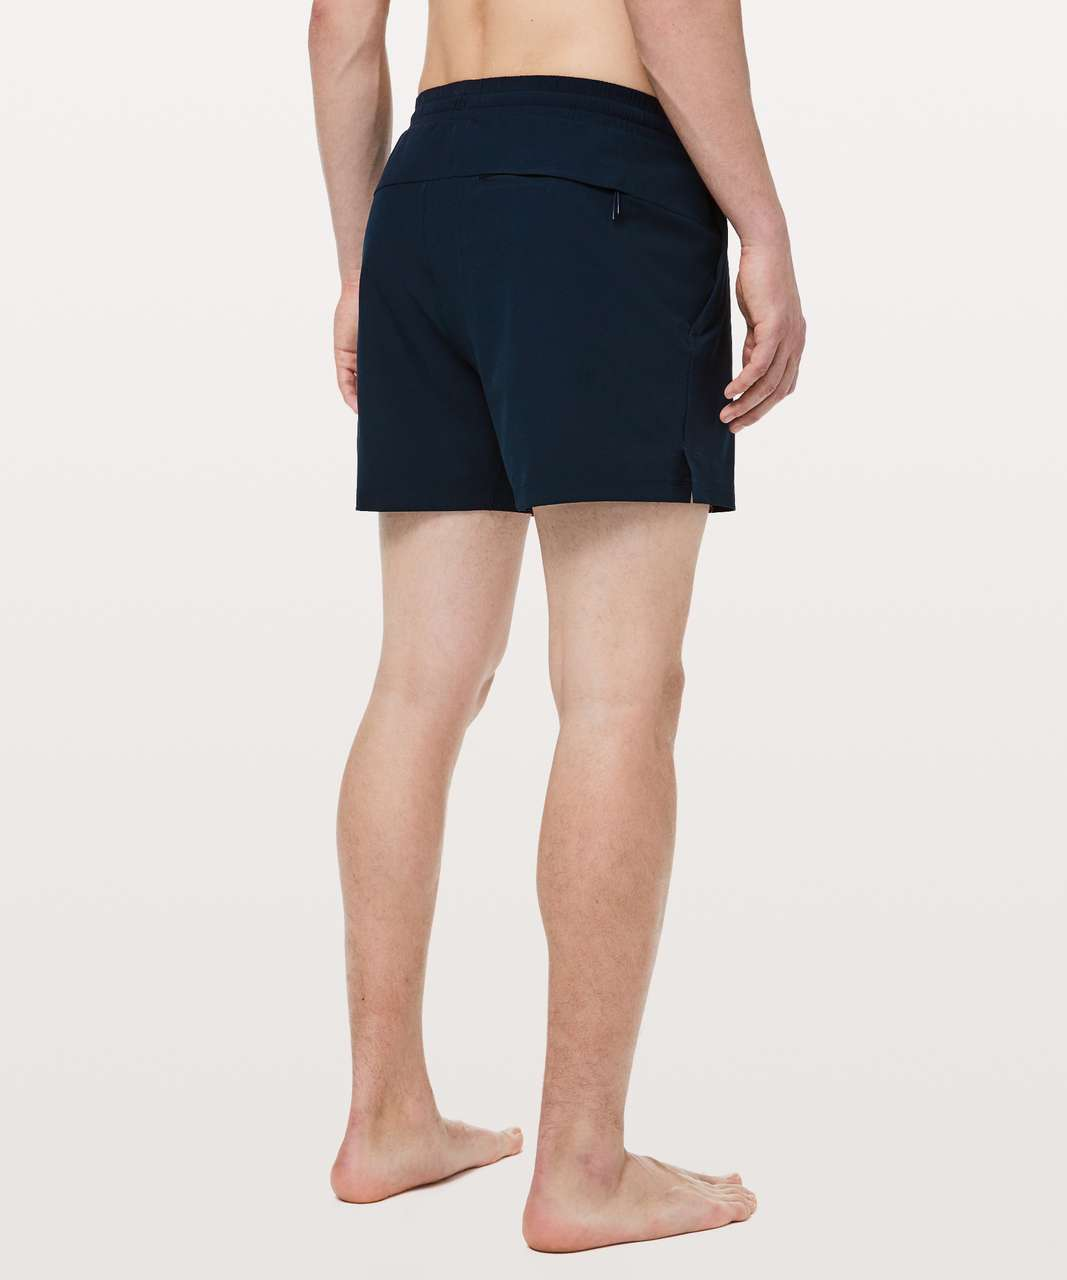 "Lululemon Channel Cross Swim Short *5"" - True Navy"